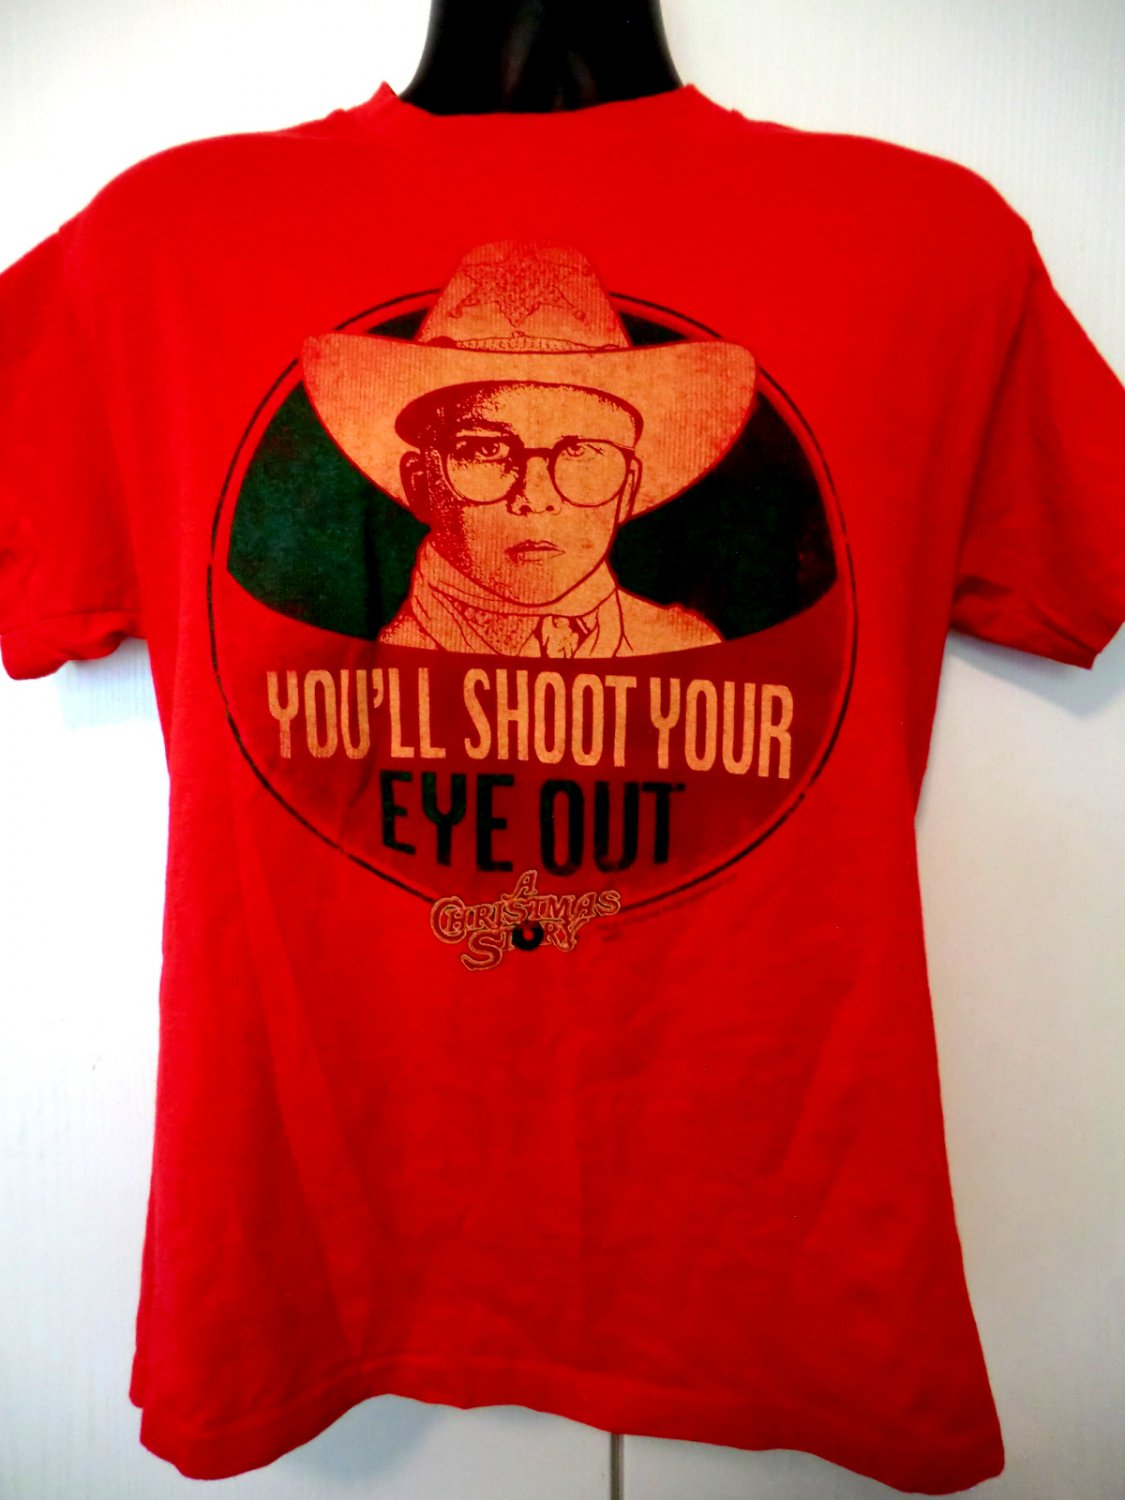 SOLD! You'll Shoot Your Eye Out T-Shirt Size Medium A Christmas Story